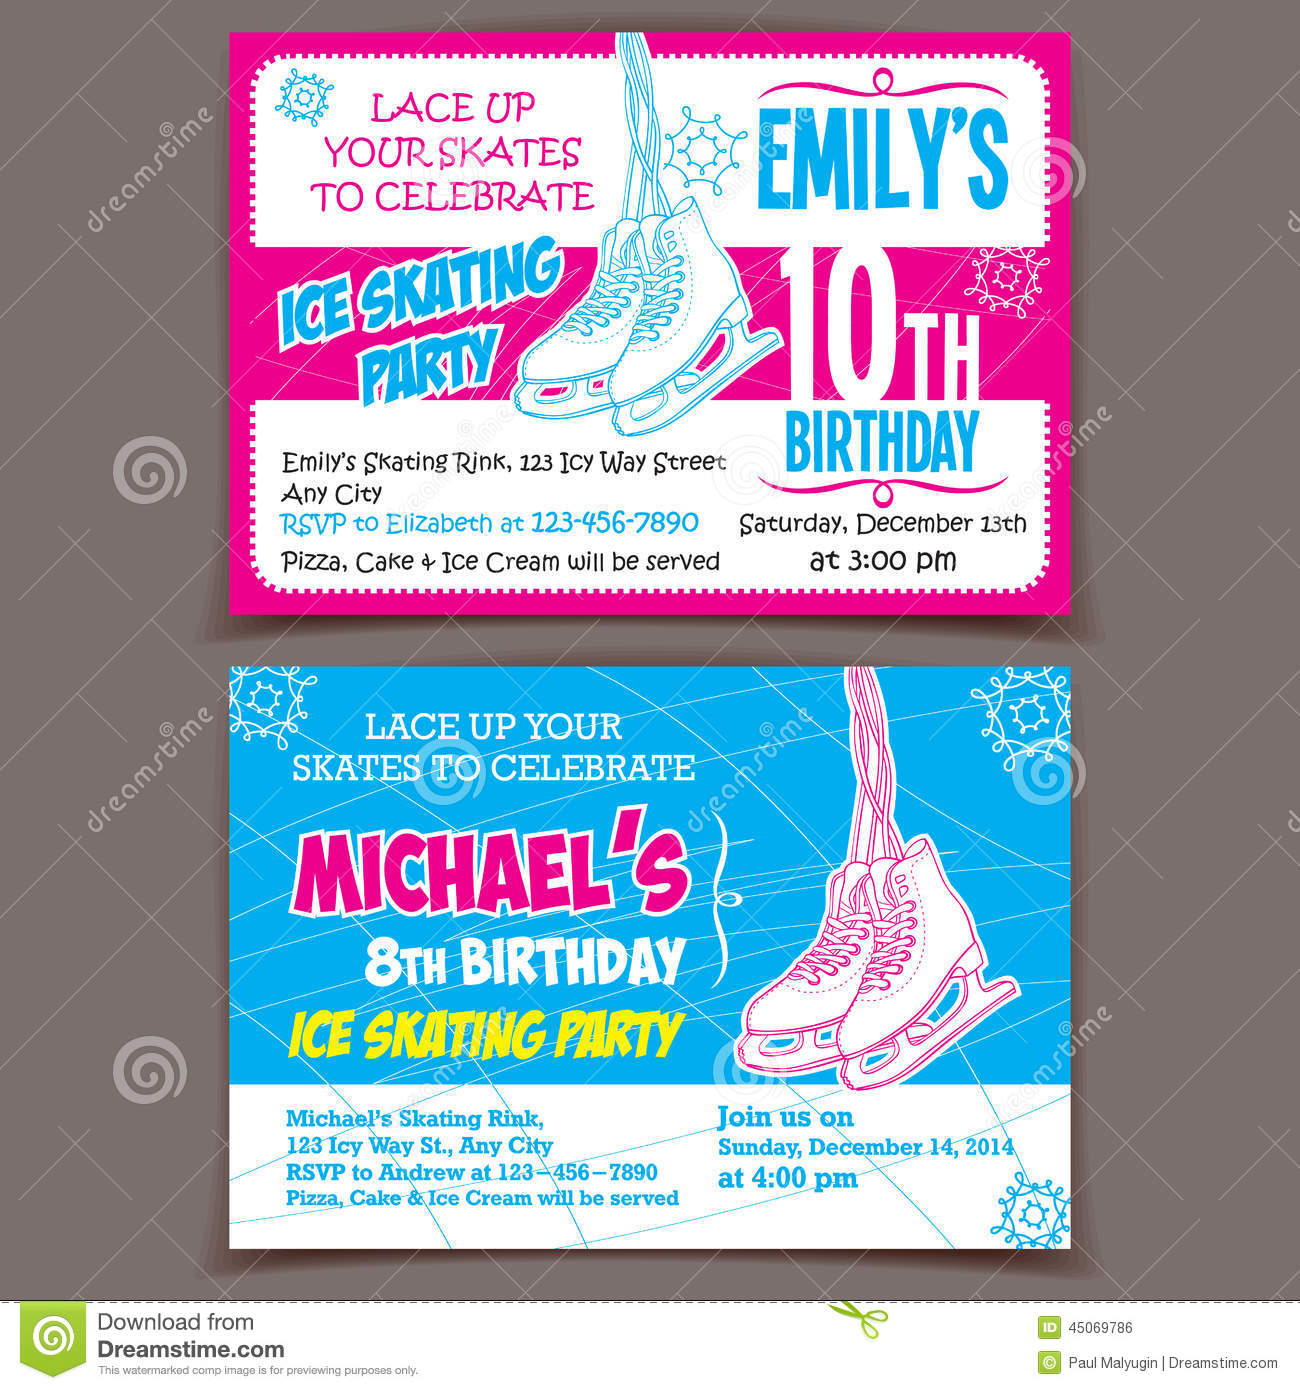 Ice Skating Birthday Party Invitation Cards Stock Vector - Image ...